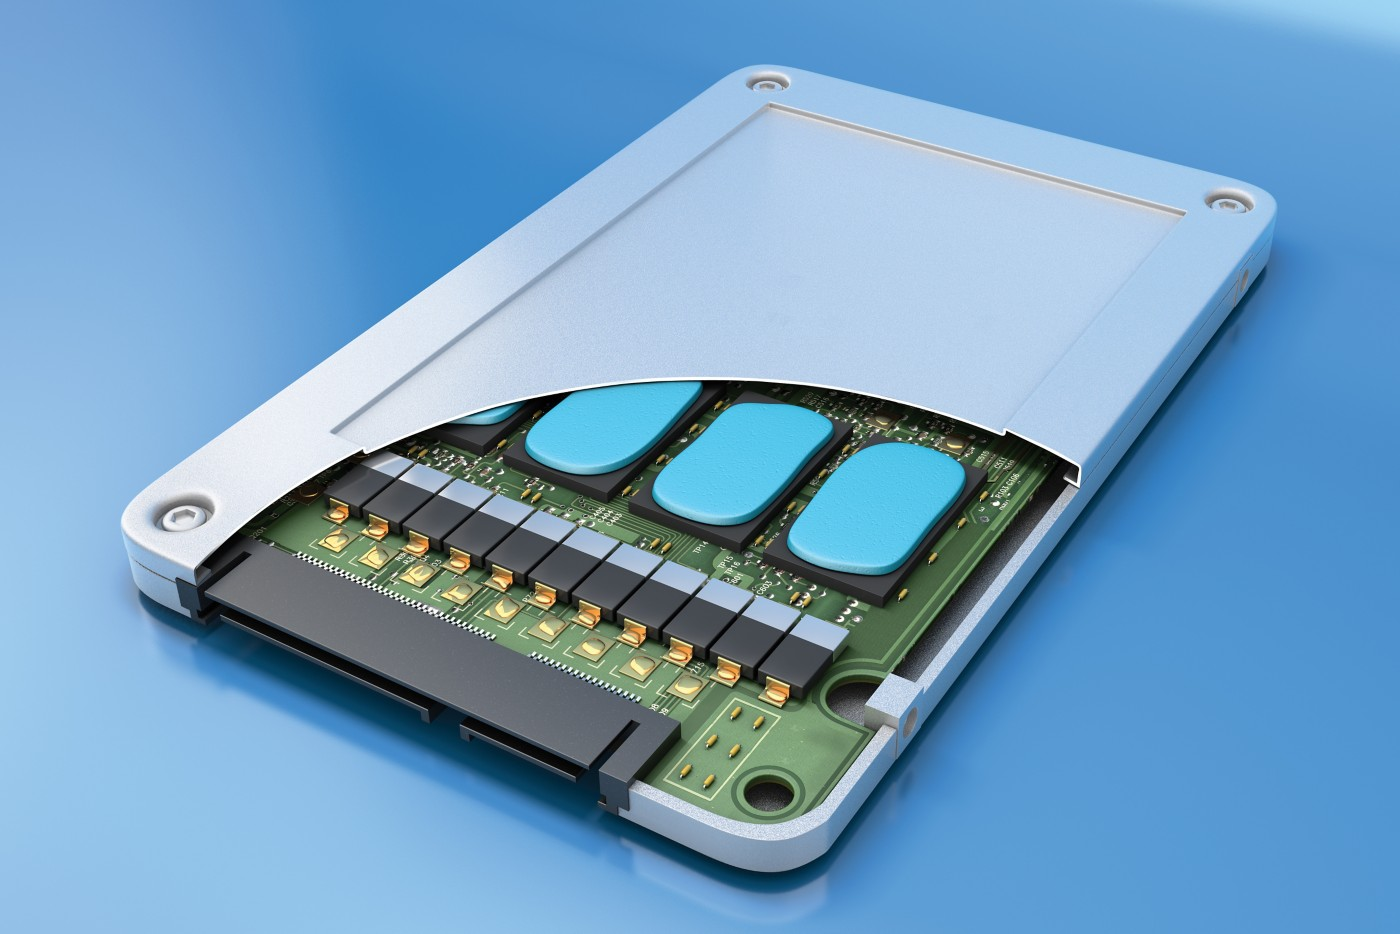 3d illustration of an electronic assembly utilizing bergquist thermally conductive liquid gap filler TGF 4000 a cut-away section of outer casing shows cured blue elastomer on top of components and just under the outer casing